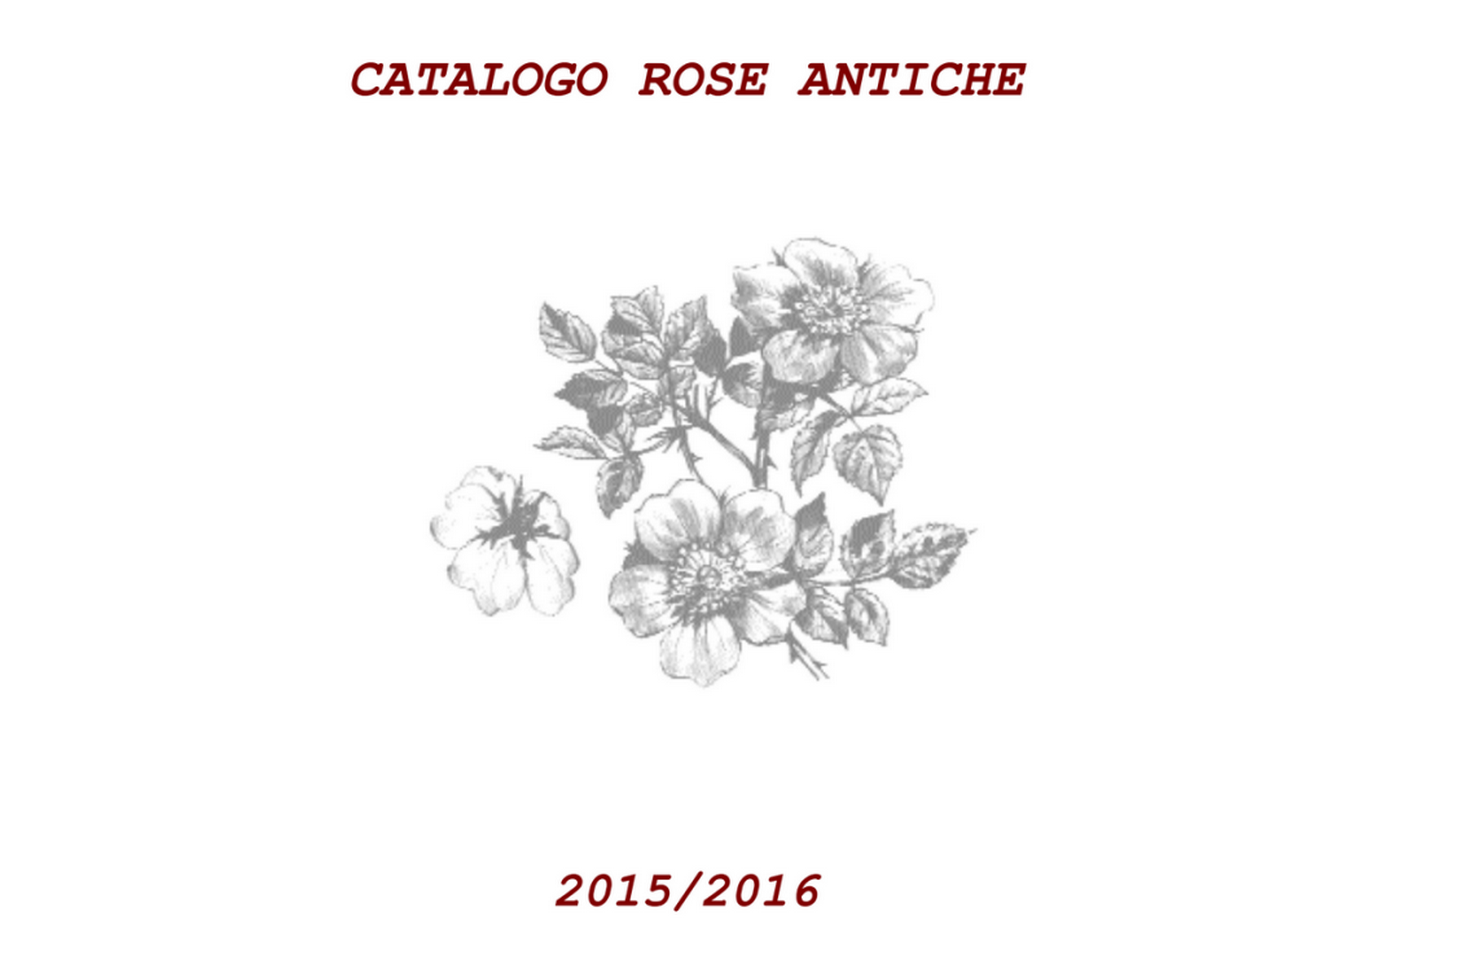 catalogo rose antiche les collettes 2015-2016